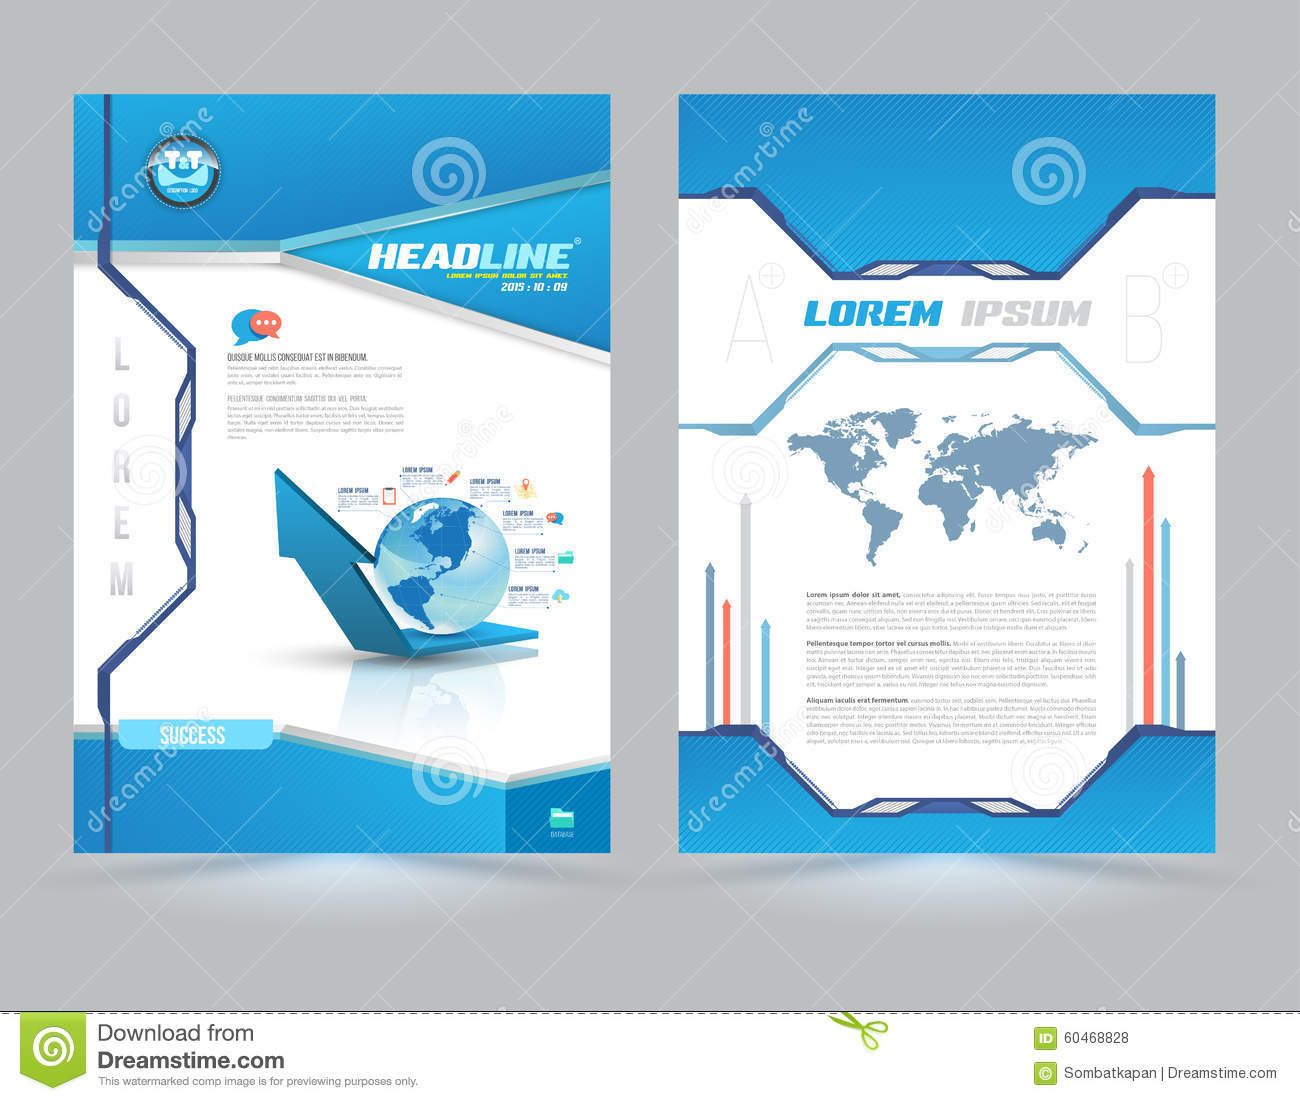 report cover page templates free download expenses claim template – Word Cover Page Template Free